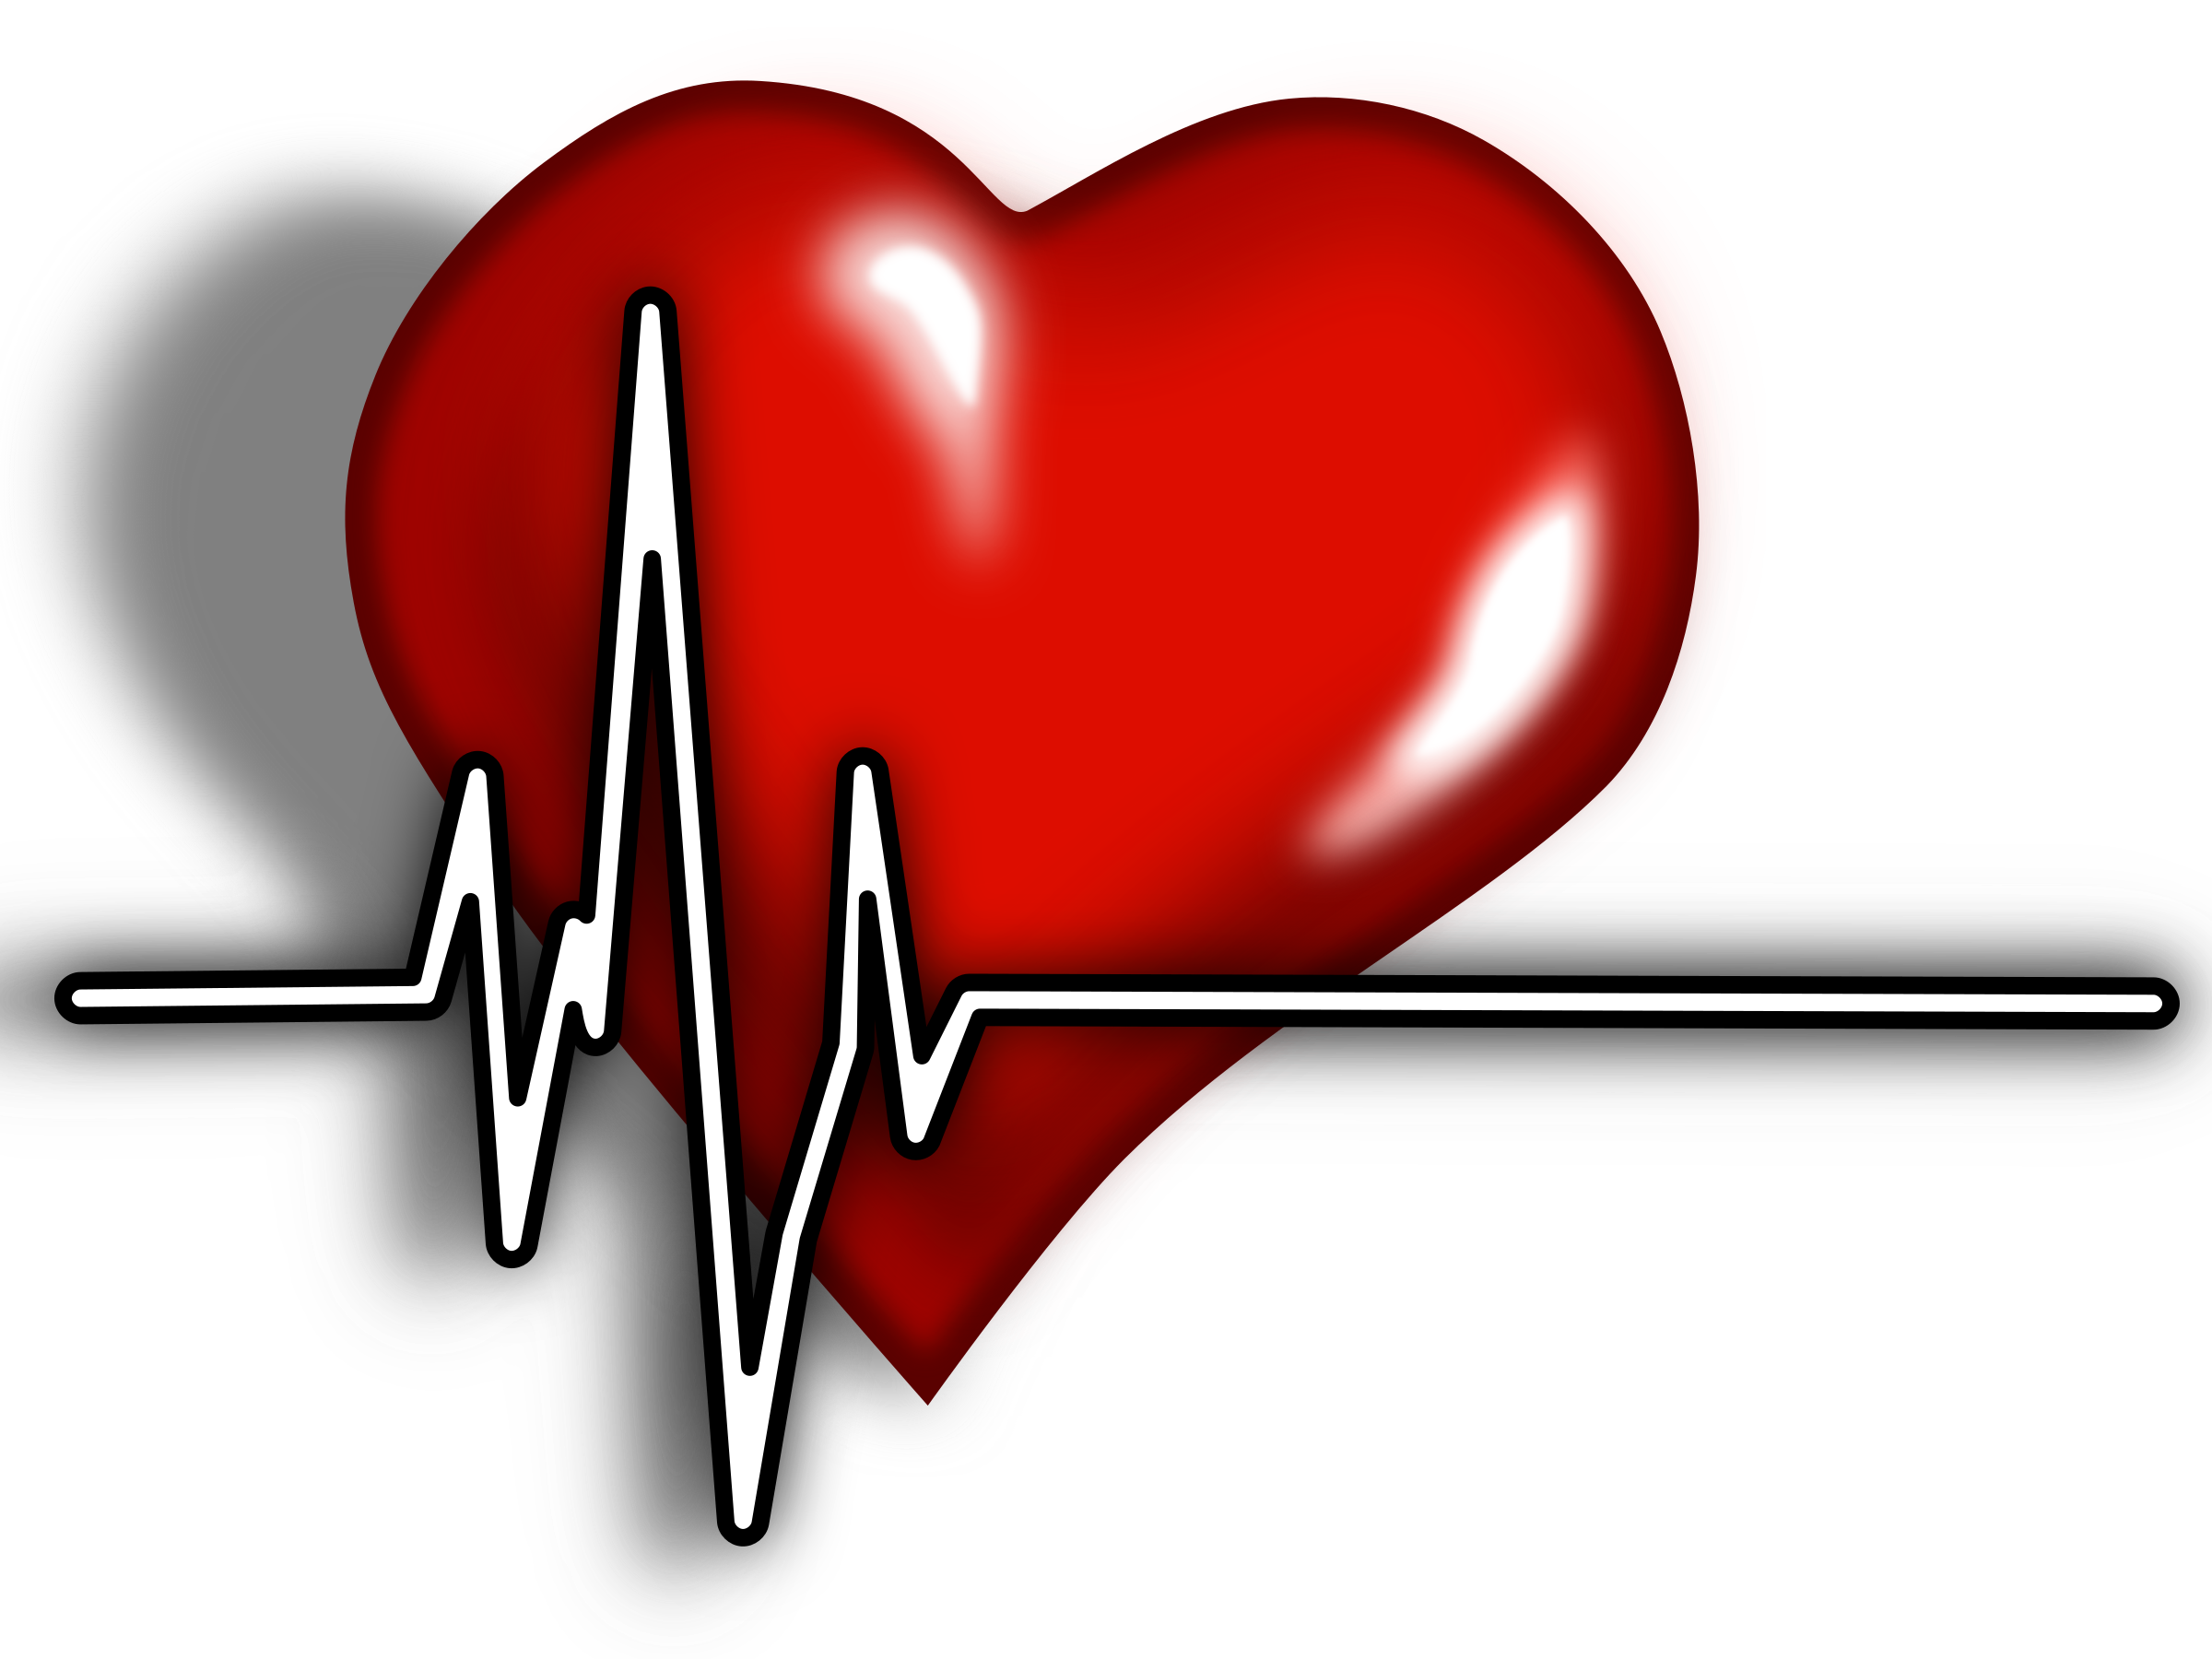 Telemetry clipart clipart free library Heartbeat clipart telemetry, Heartbeat telemetry Transparent ... clipart free library